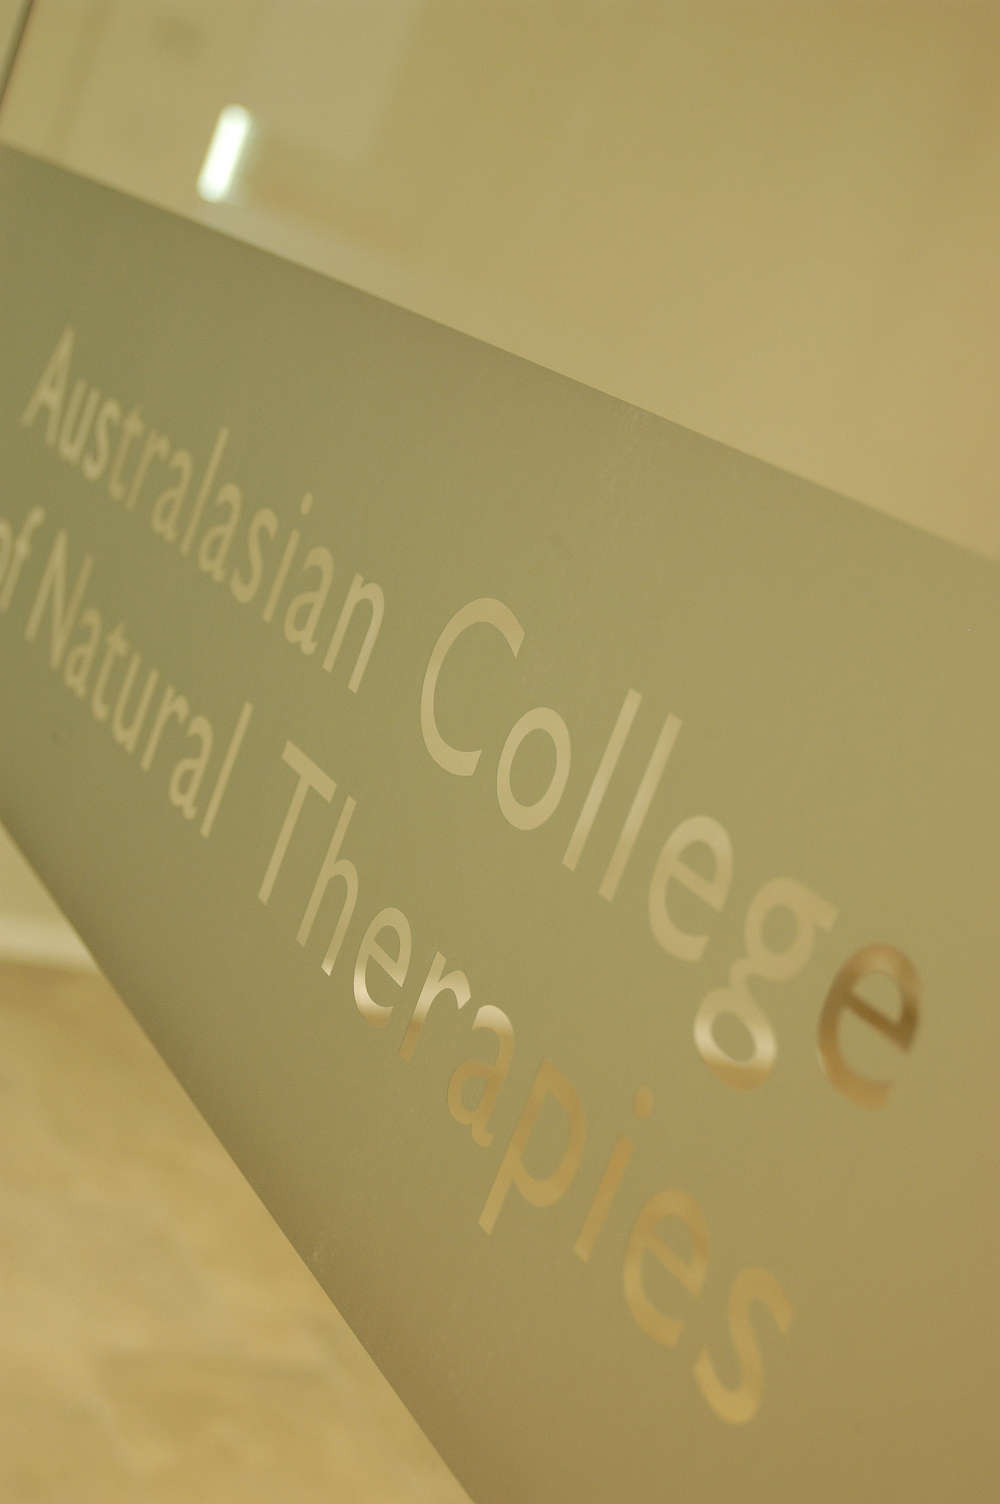 AUSTRALASIAN COLLEGE OF NATURAL THERAPIES(ACNT)